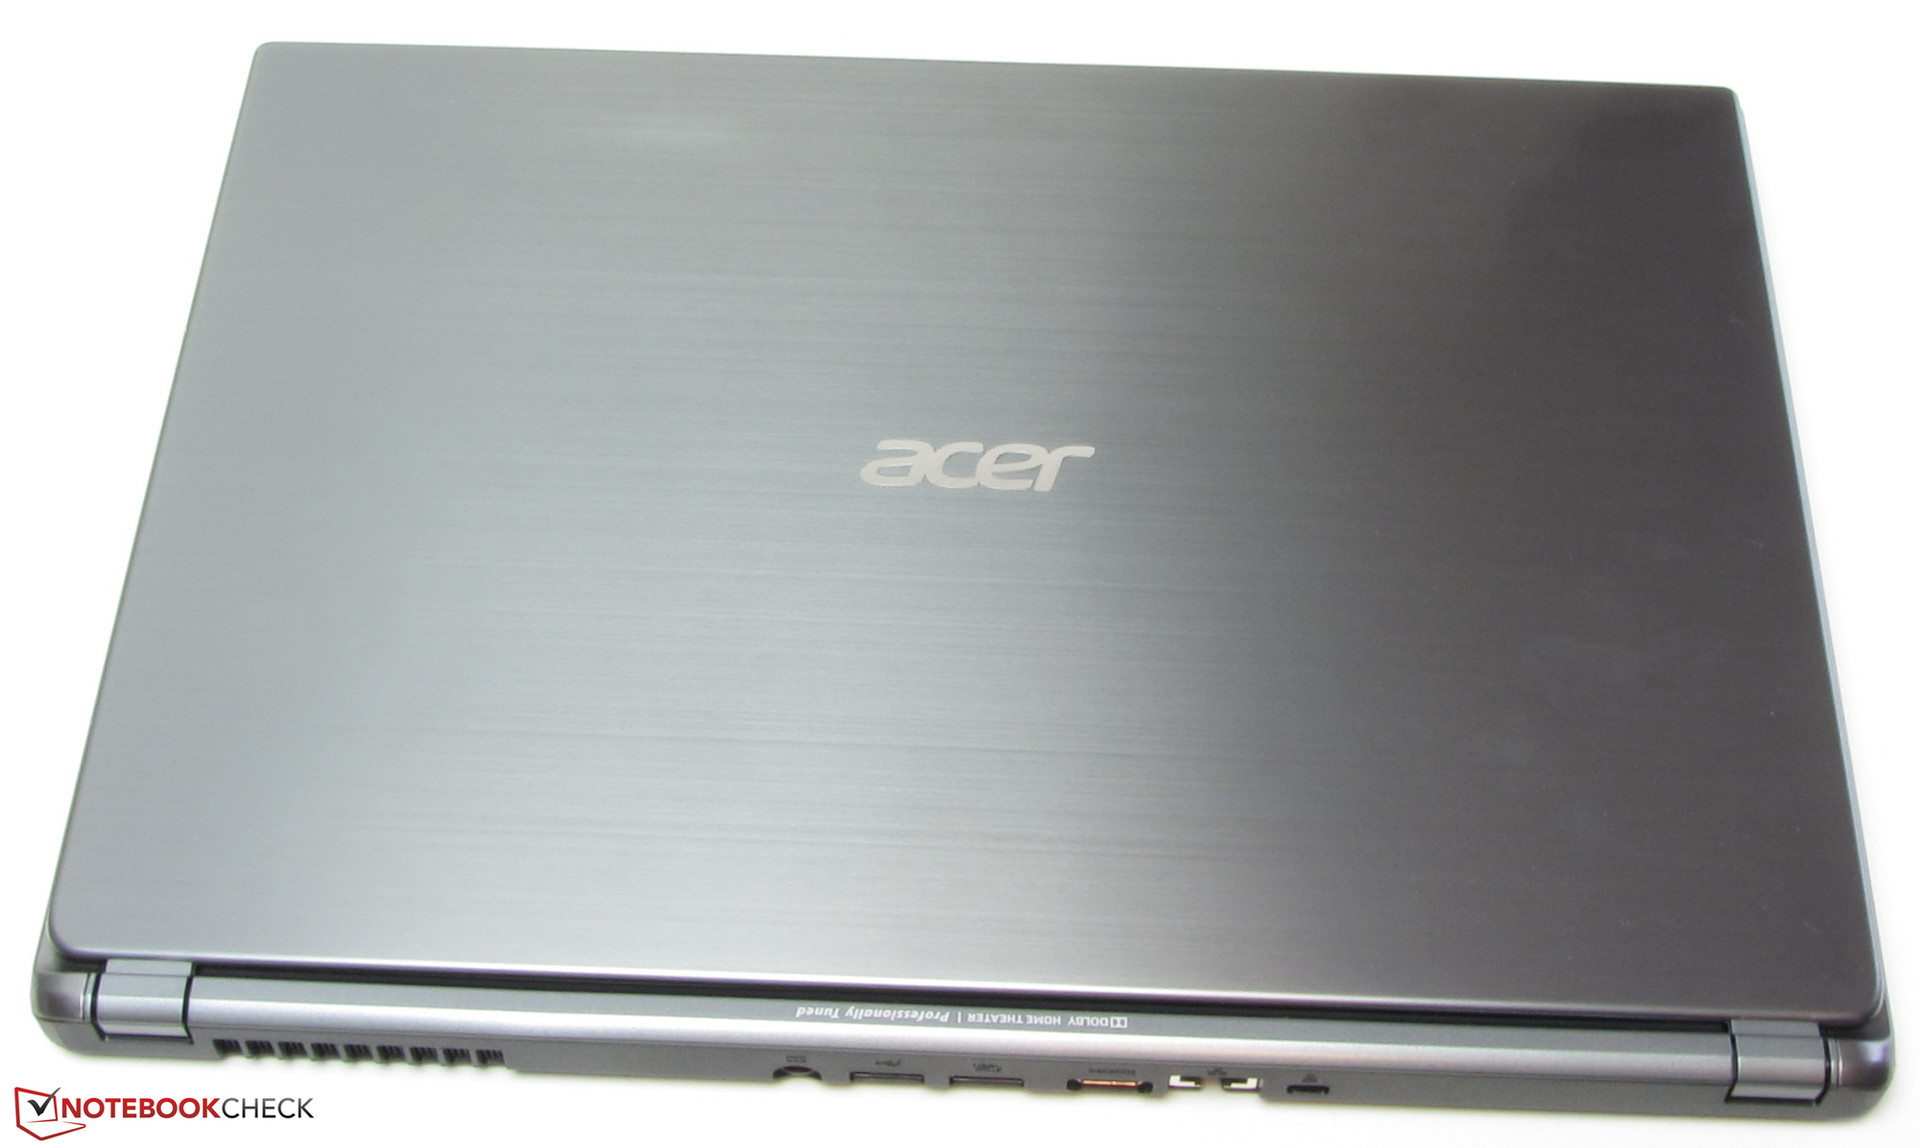 Download Drivers: Acer Aspire M3-481 Broadcom Bluetooth